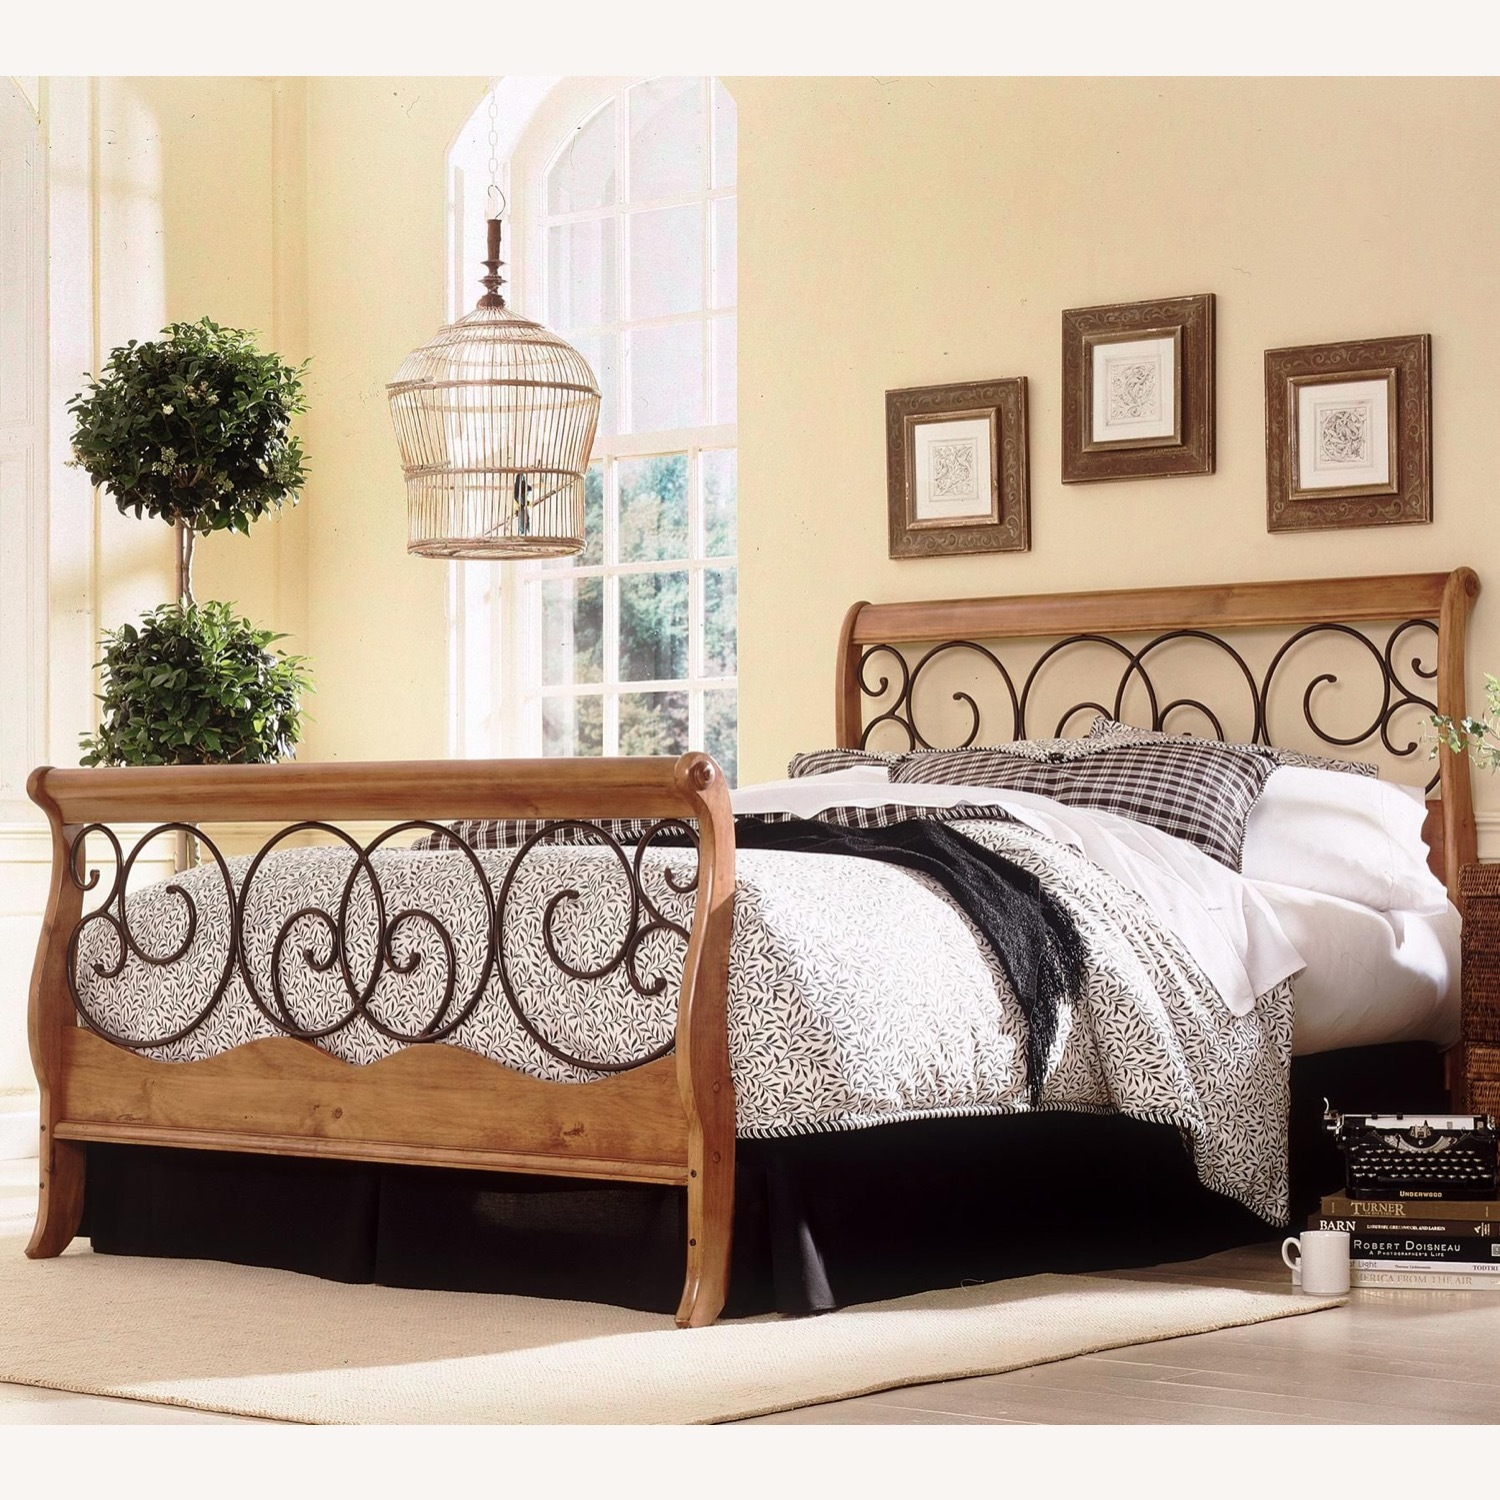 Wayfair Wood and Metal Sleigh Bed - image-1